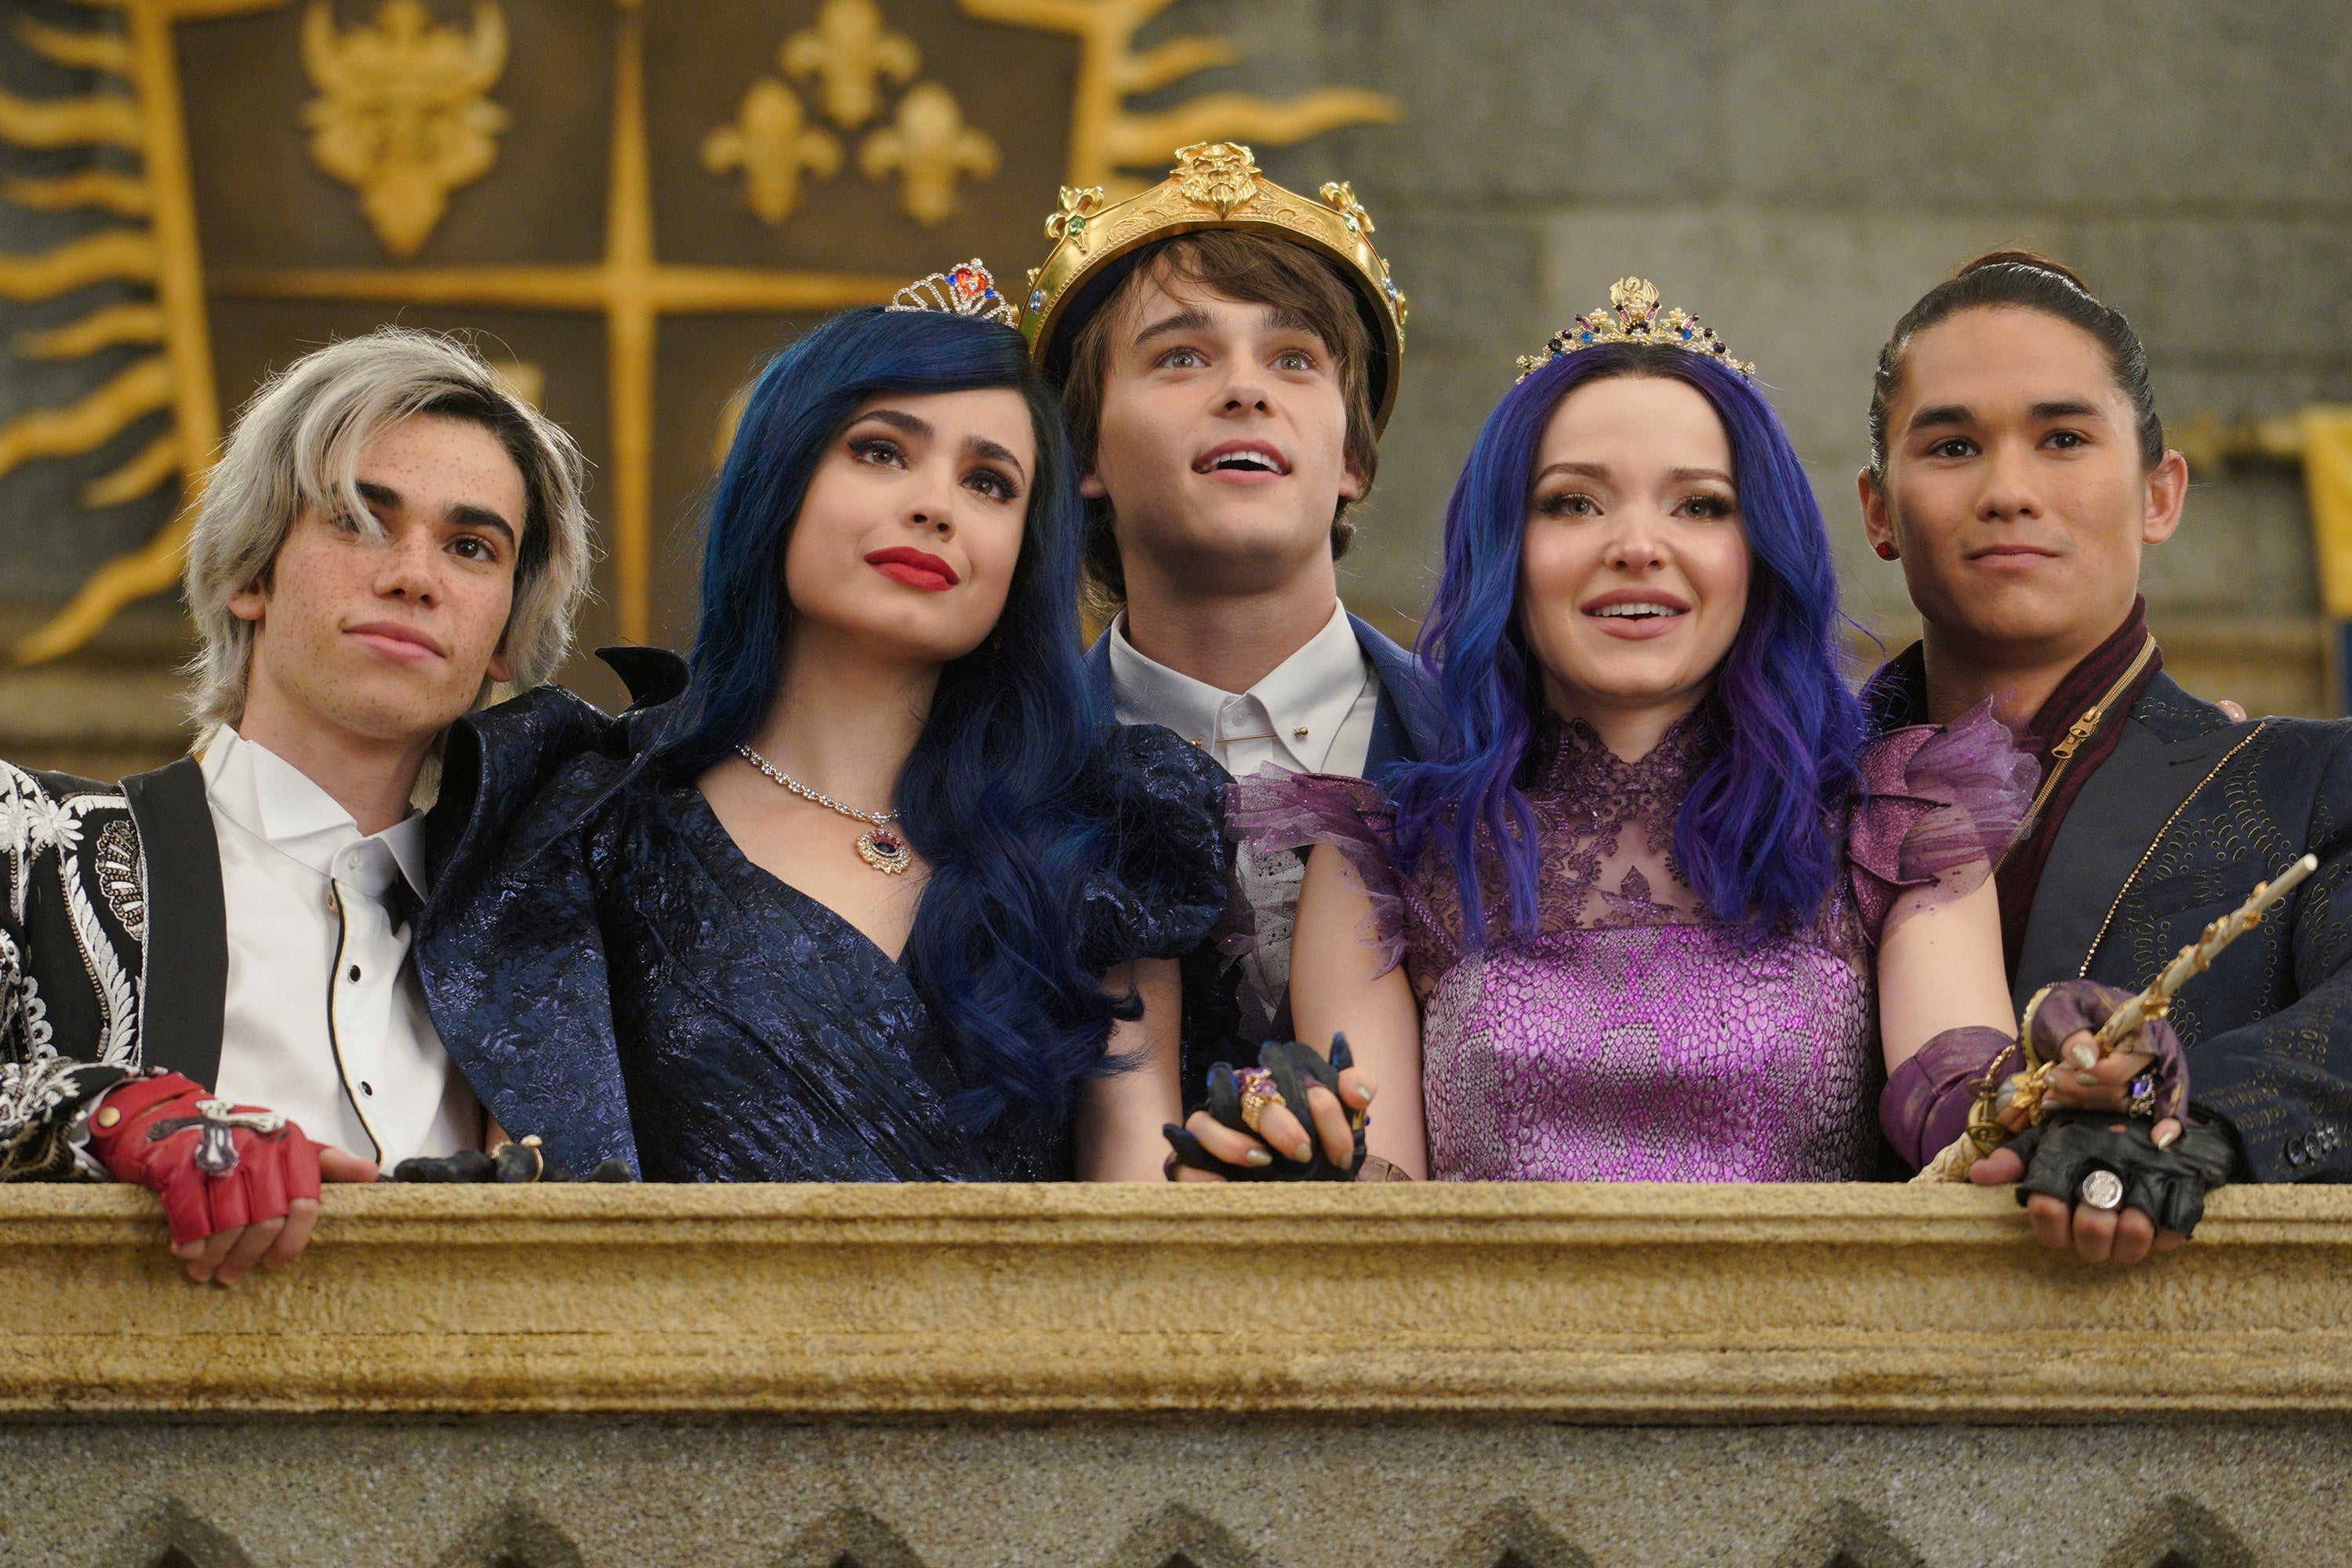 'Descendants' Stars Share Heartfelt Messages and Behind-the-Scenes Pics of Cameron Boyce Ahead of Final Sequel